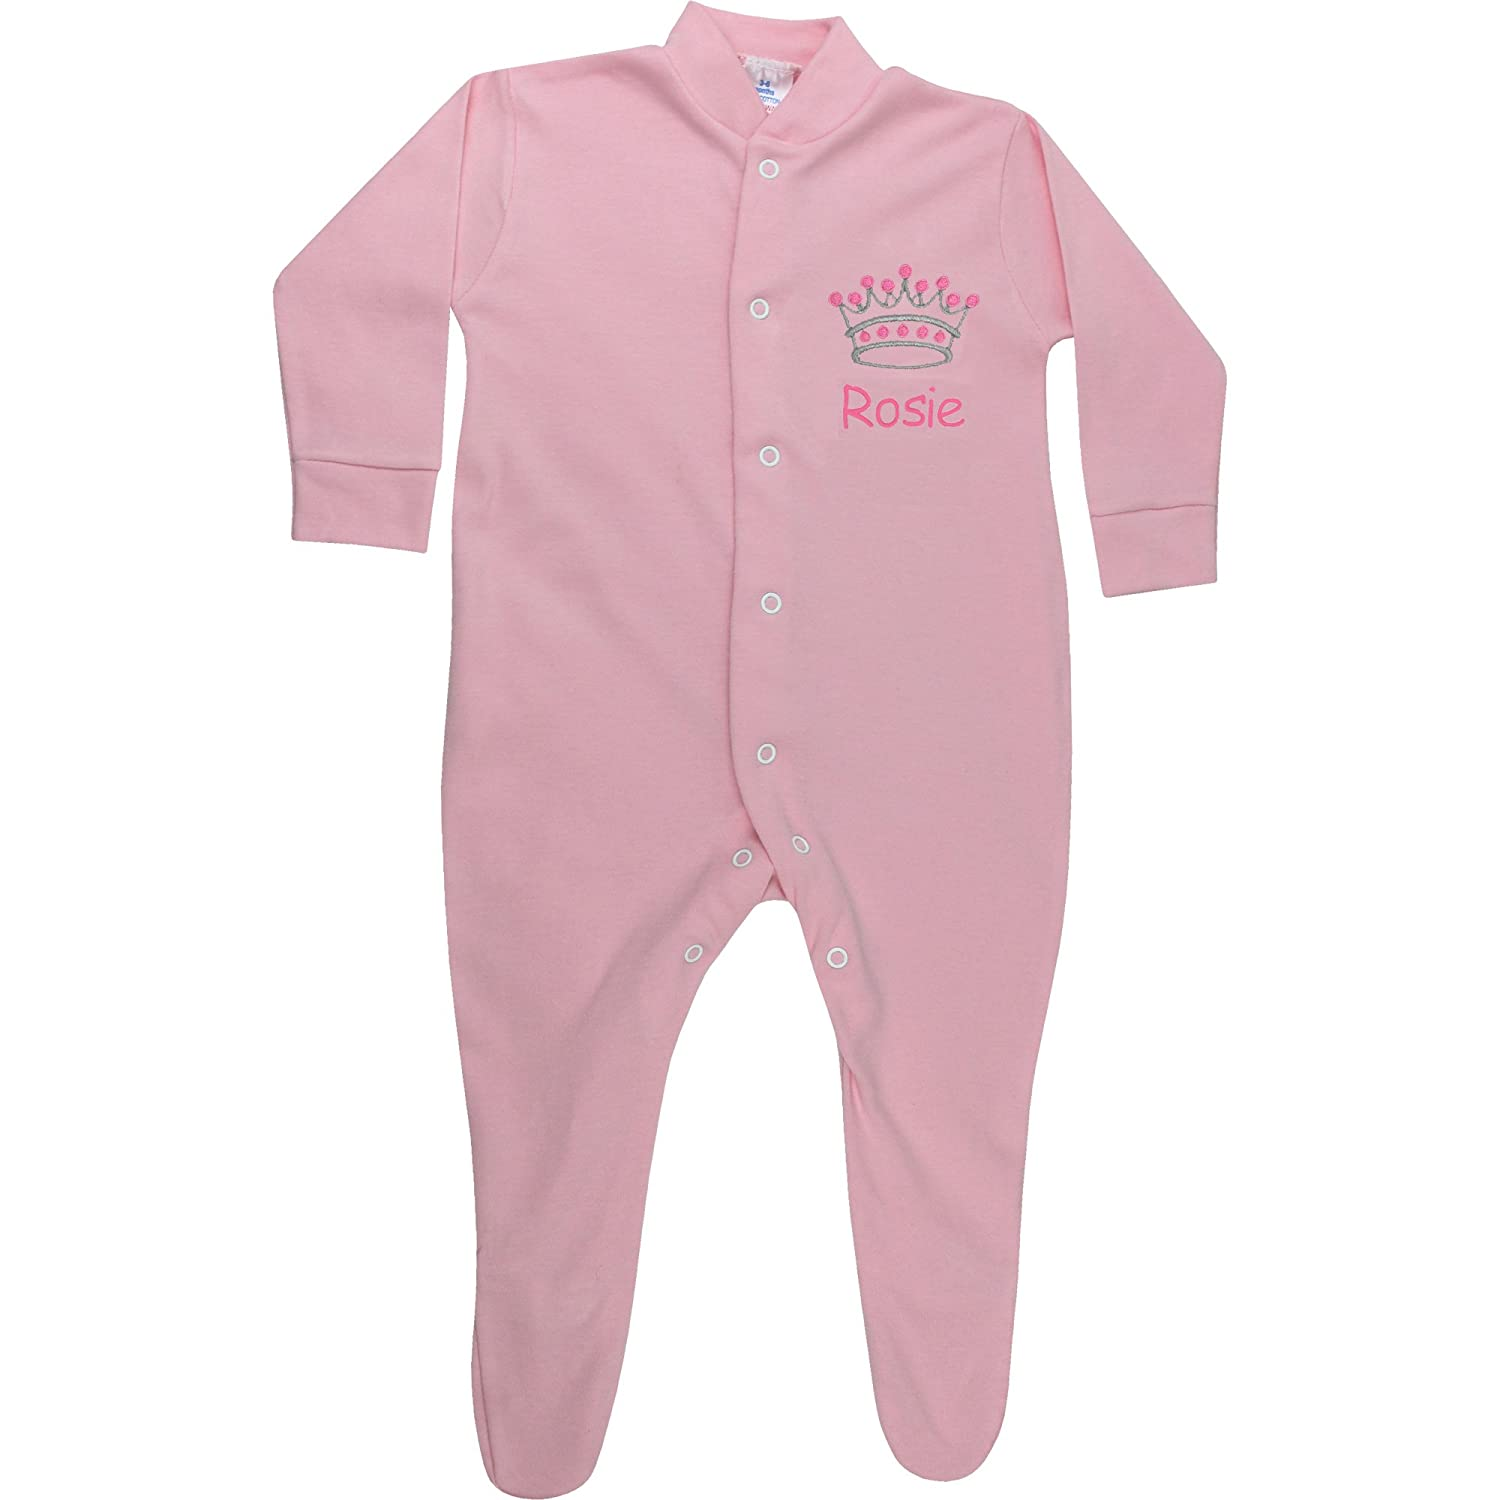 Personalised Baby Girl's Pink Princess Crown All in One Sleepsuit (0-3 Months) TeddyT' s